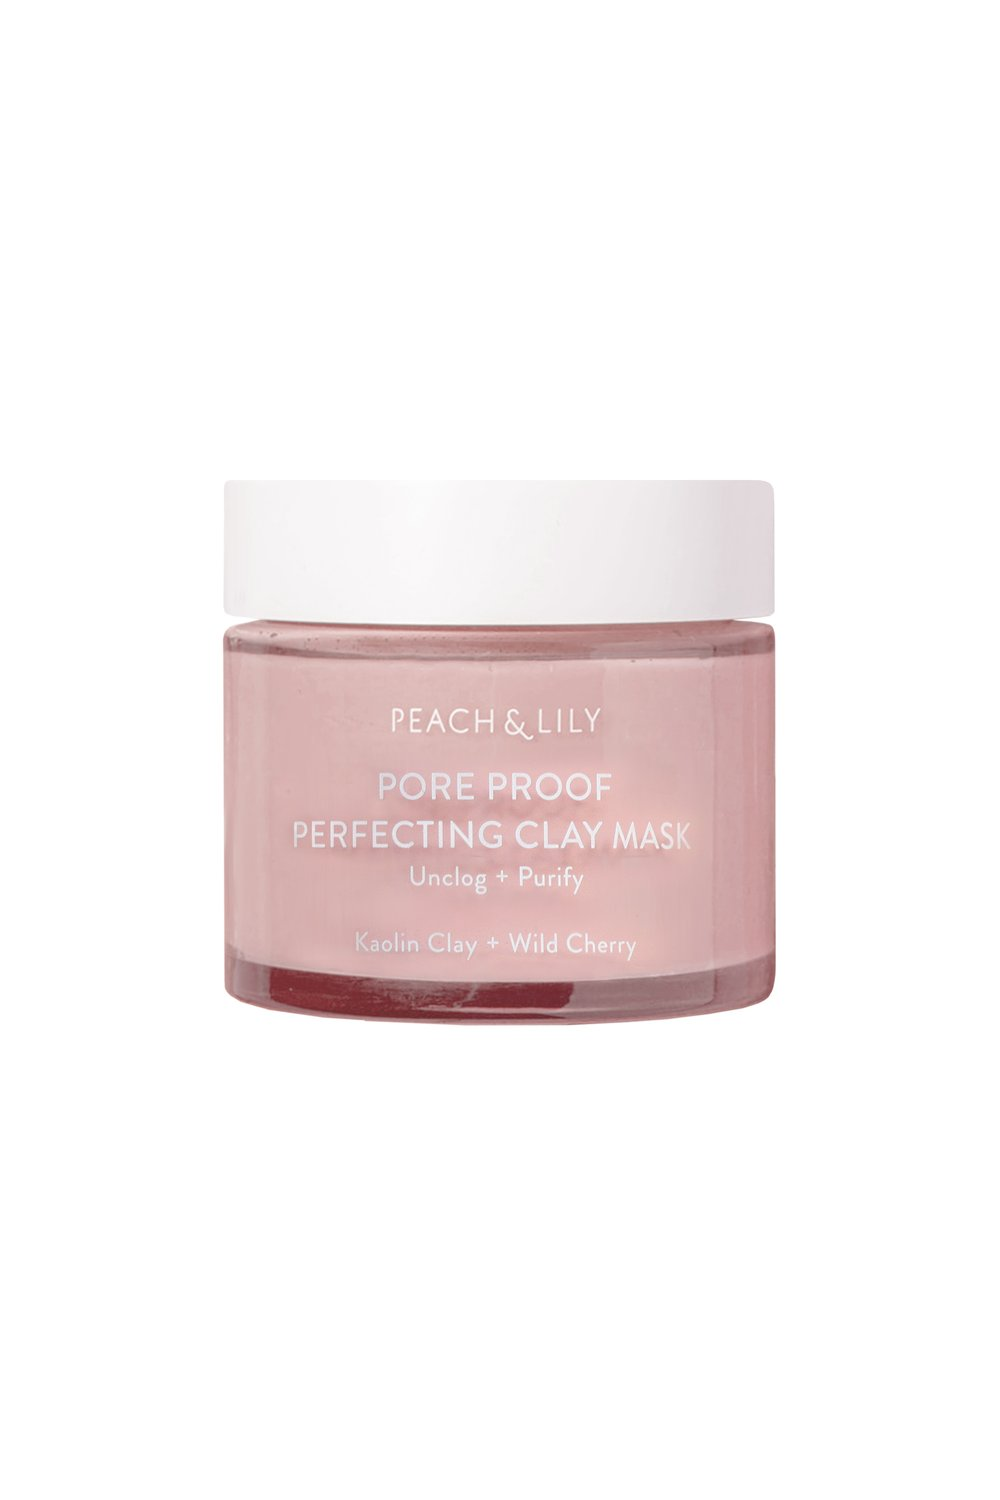 Peach & Lily Pore Proof Perfecting Clay Mask 80ml